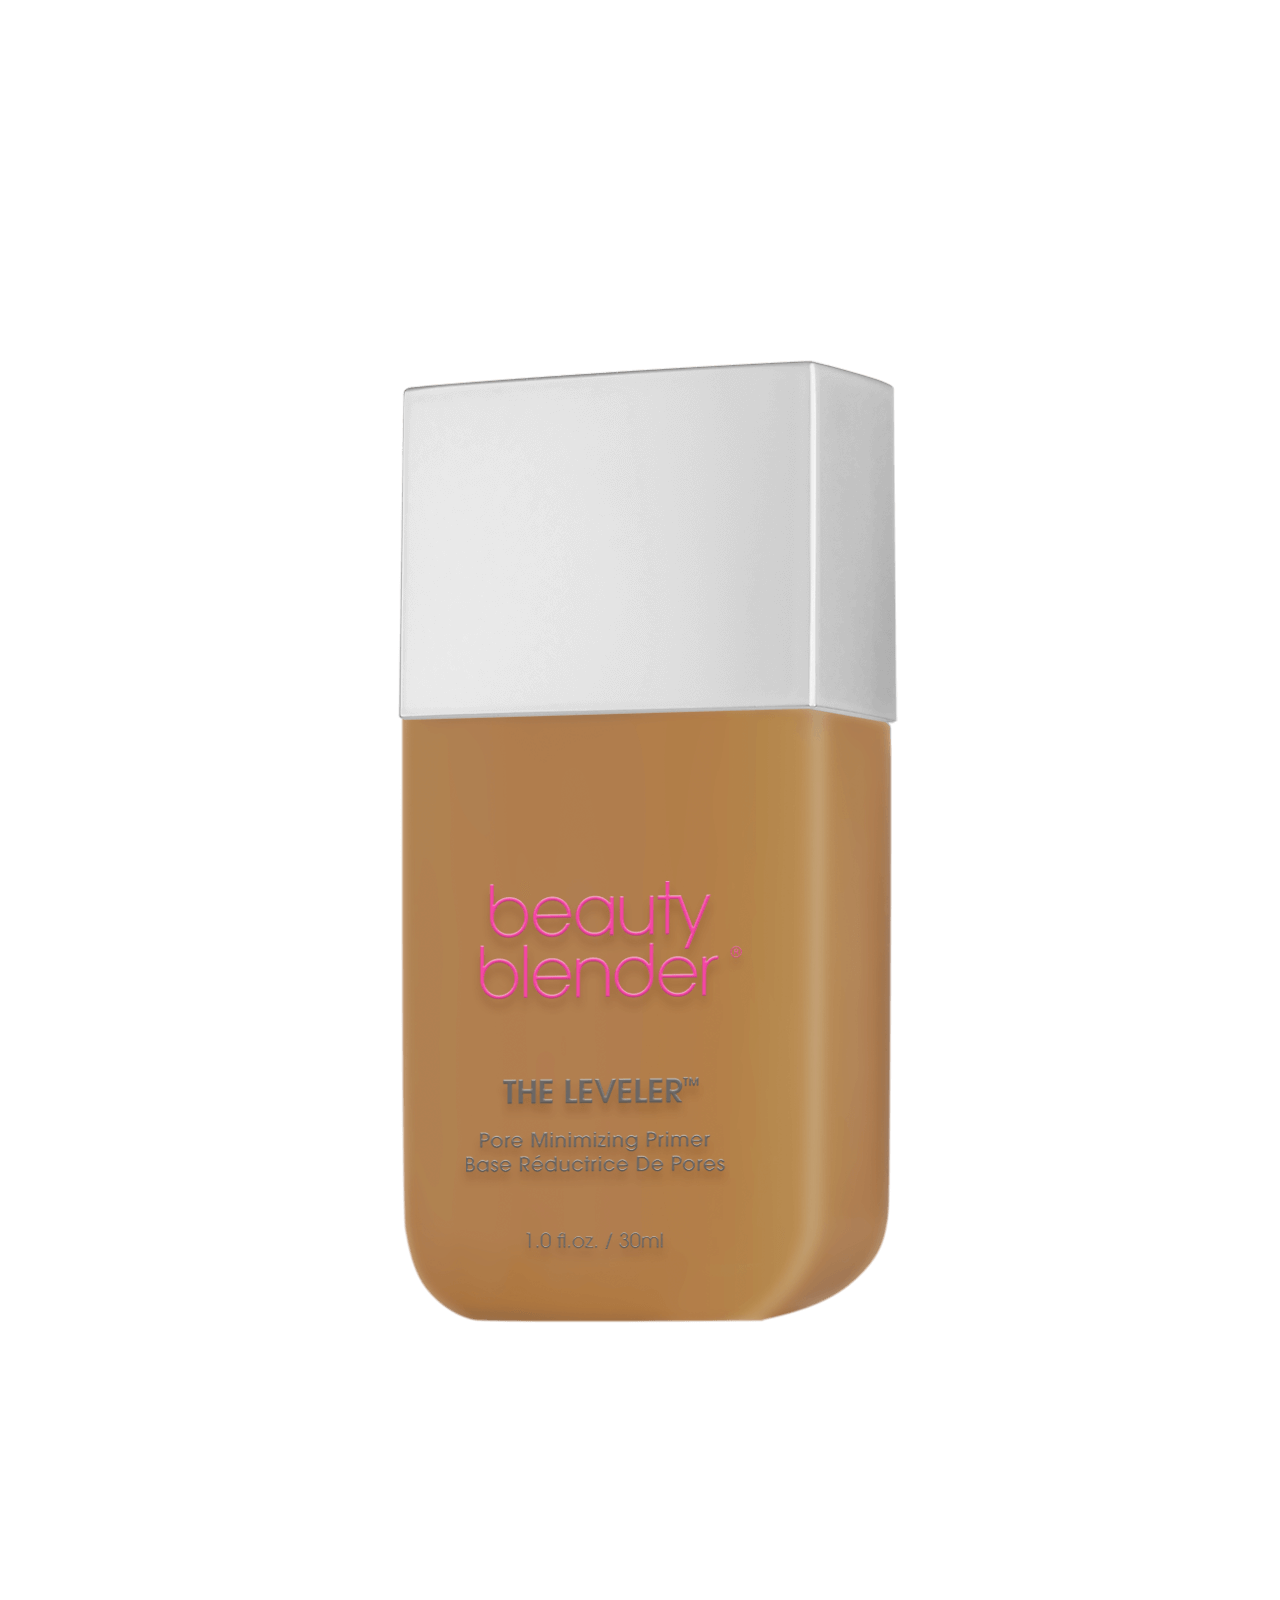 THE LEVELER™ Pore Minimizing Primer in Tan-Deep